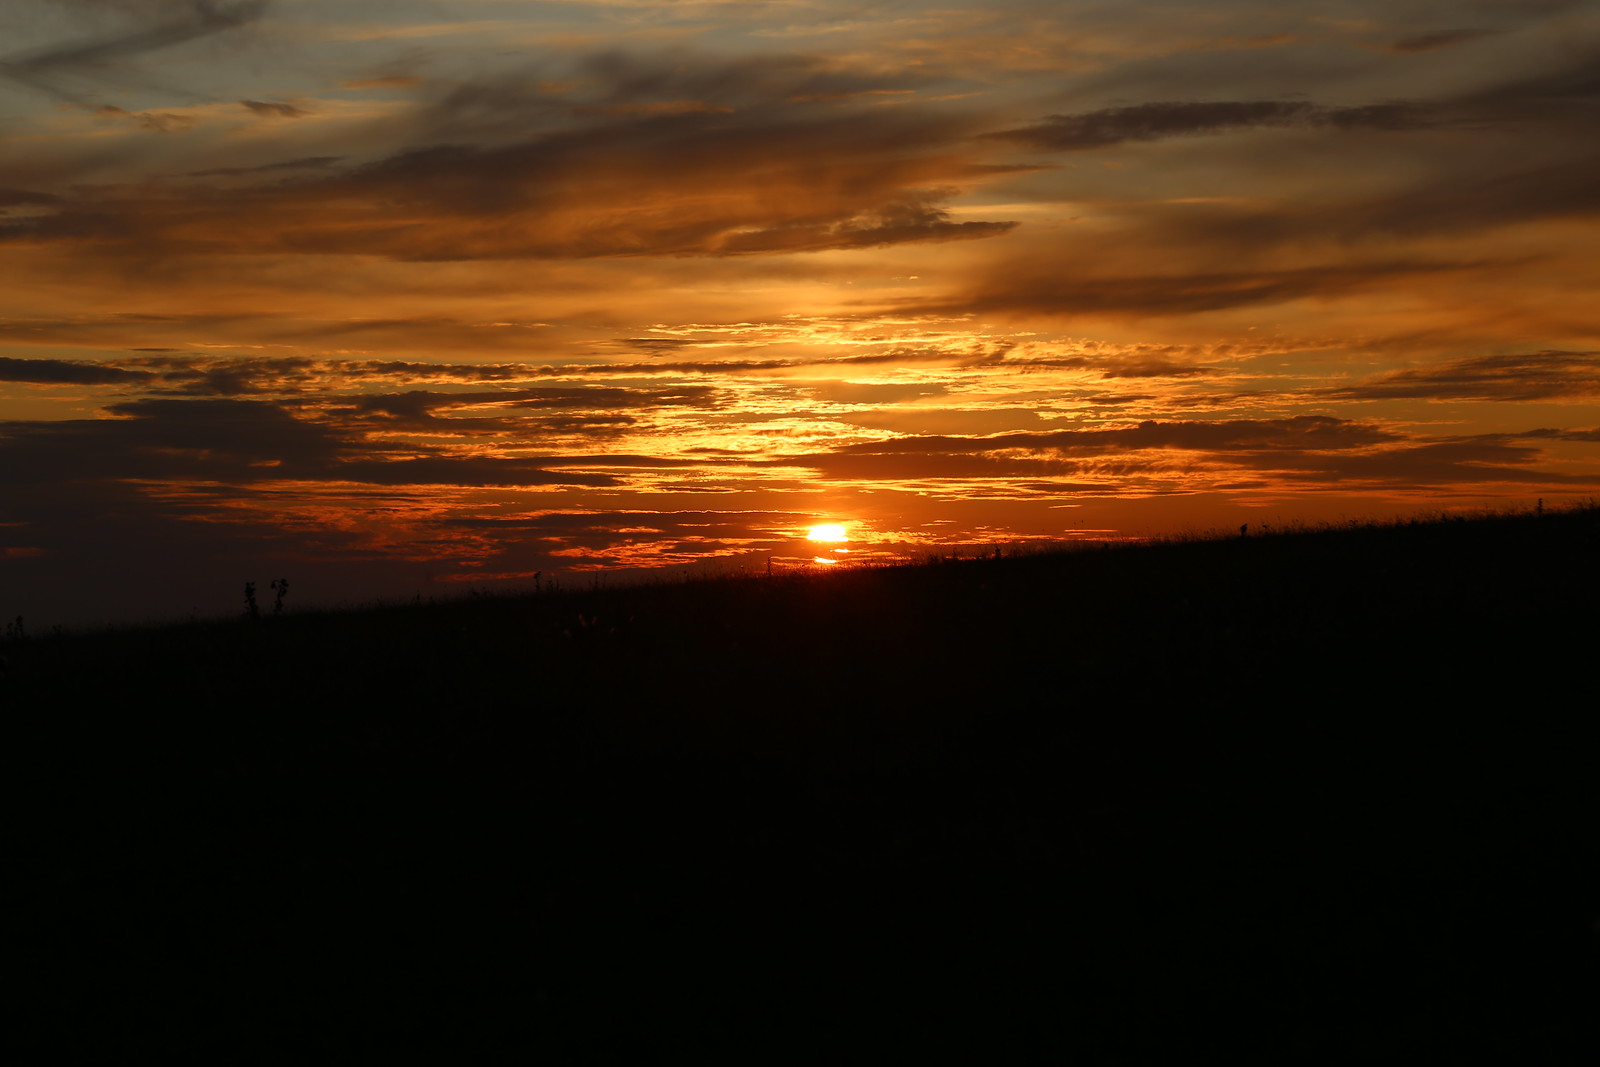 Sunset near Birling Gap